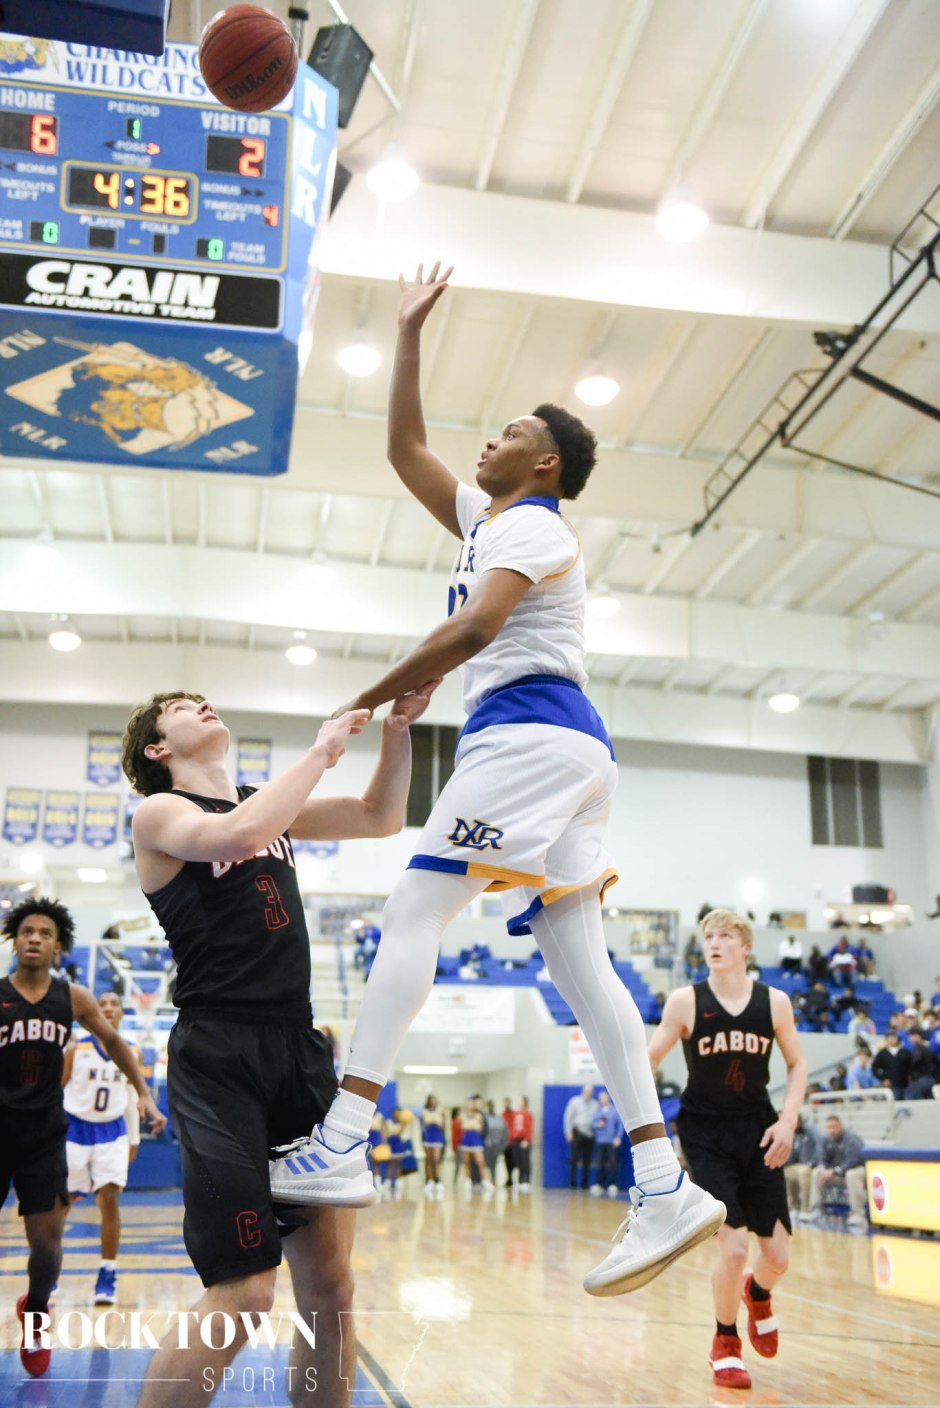 nlr_cabot_basketball_2019_(int)-158